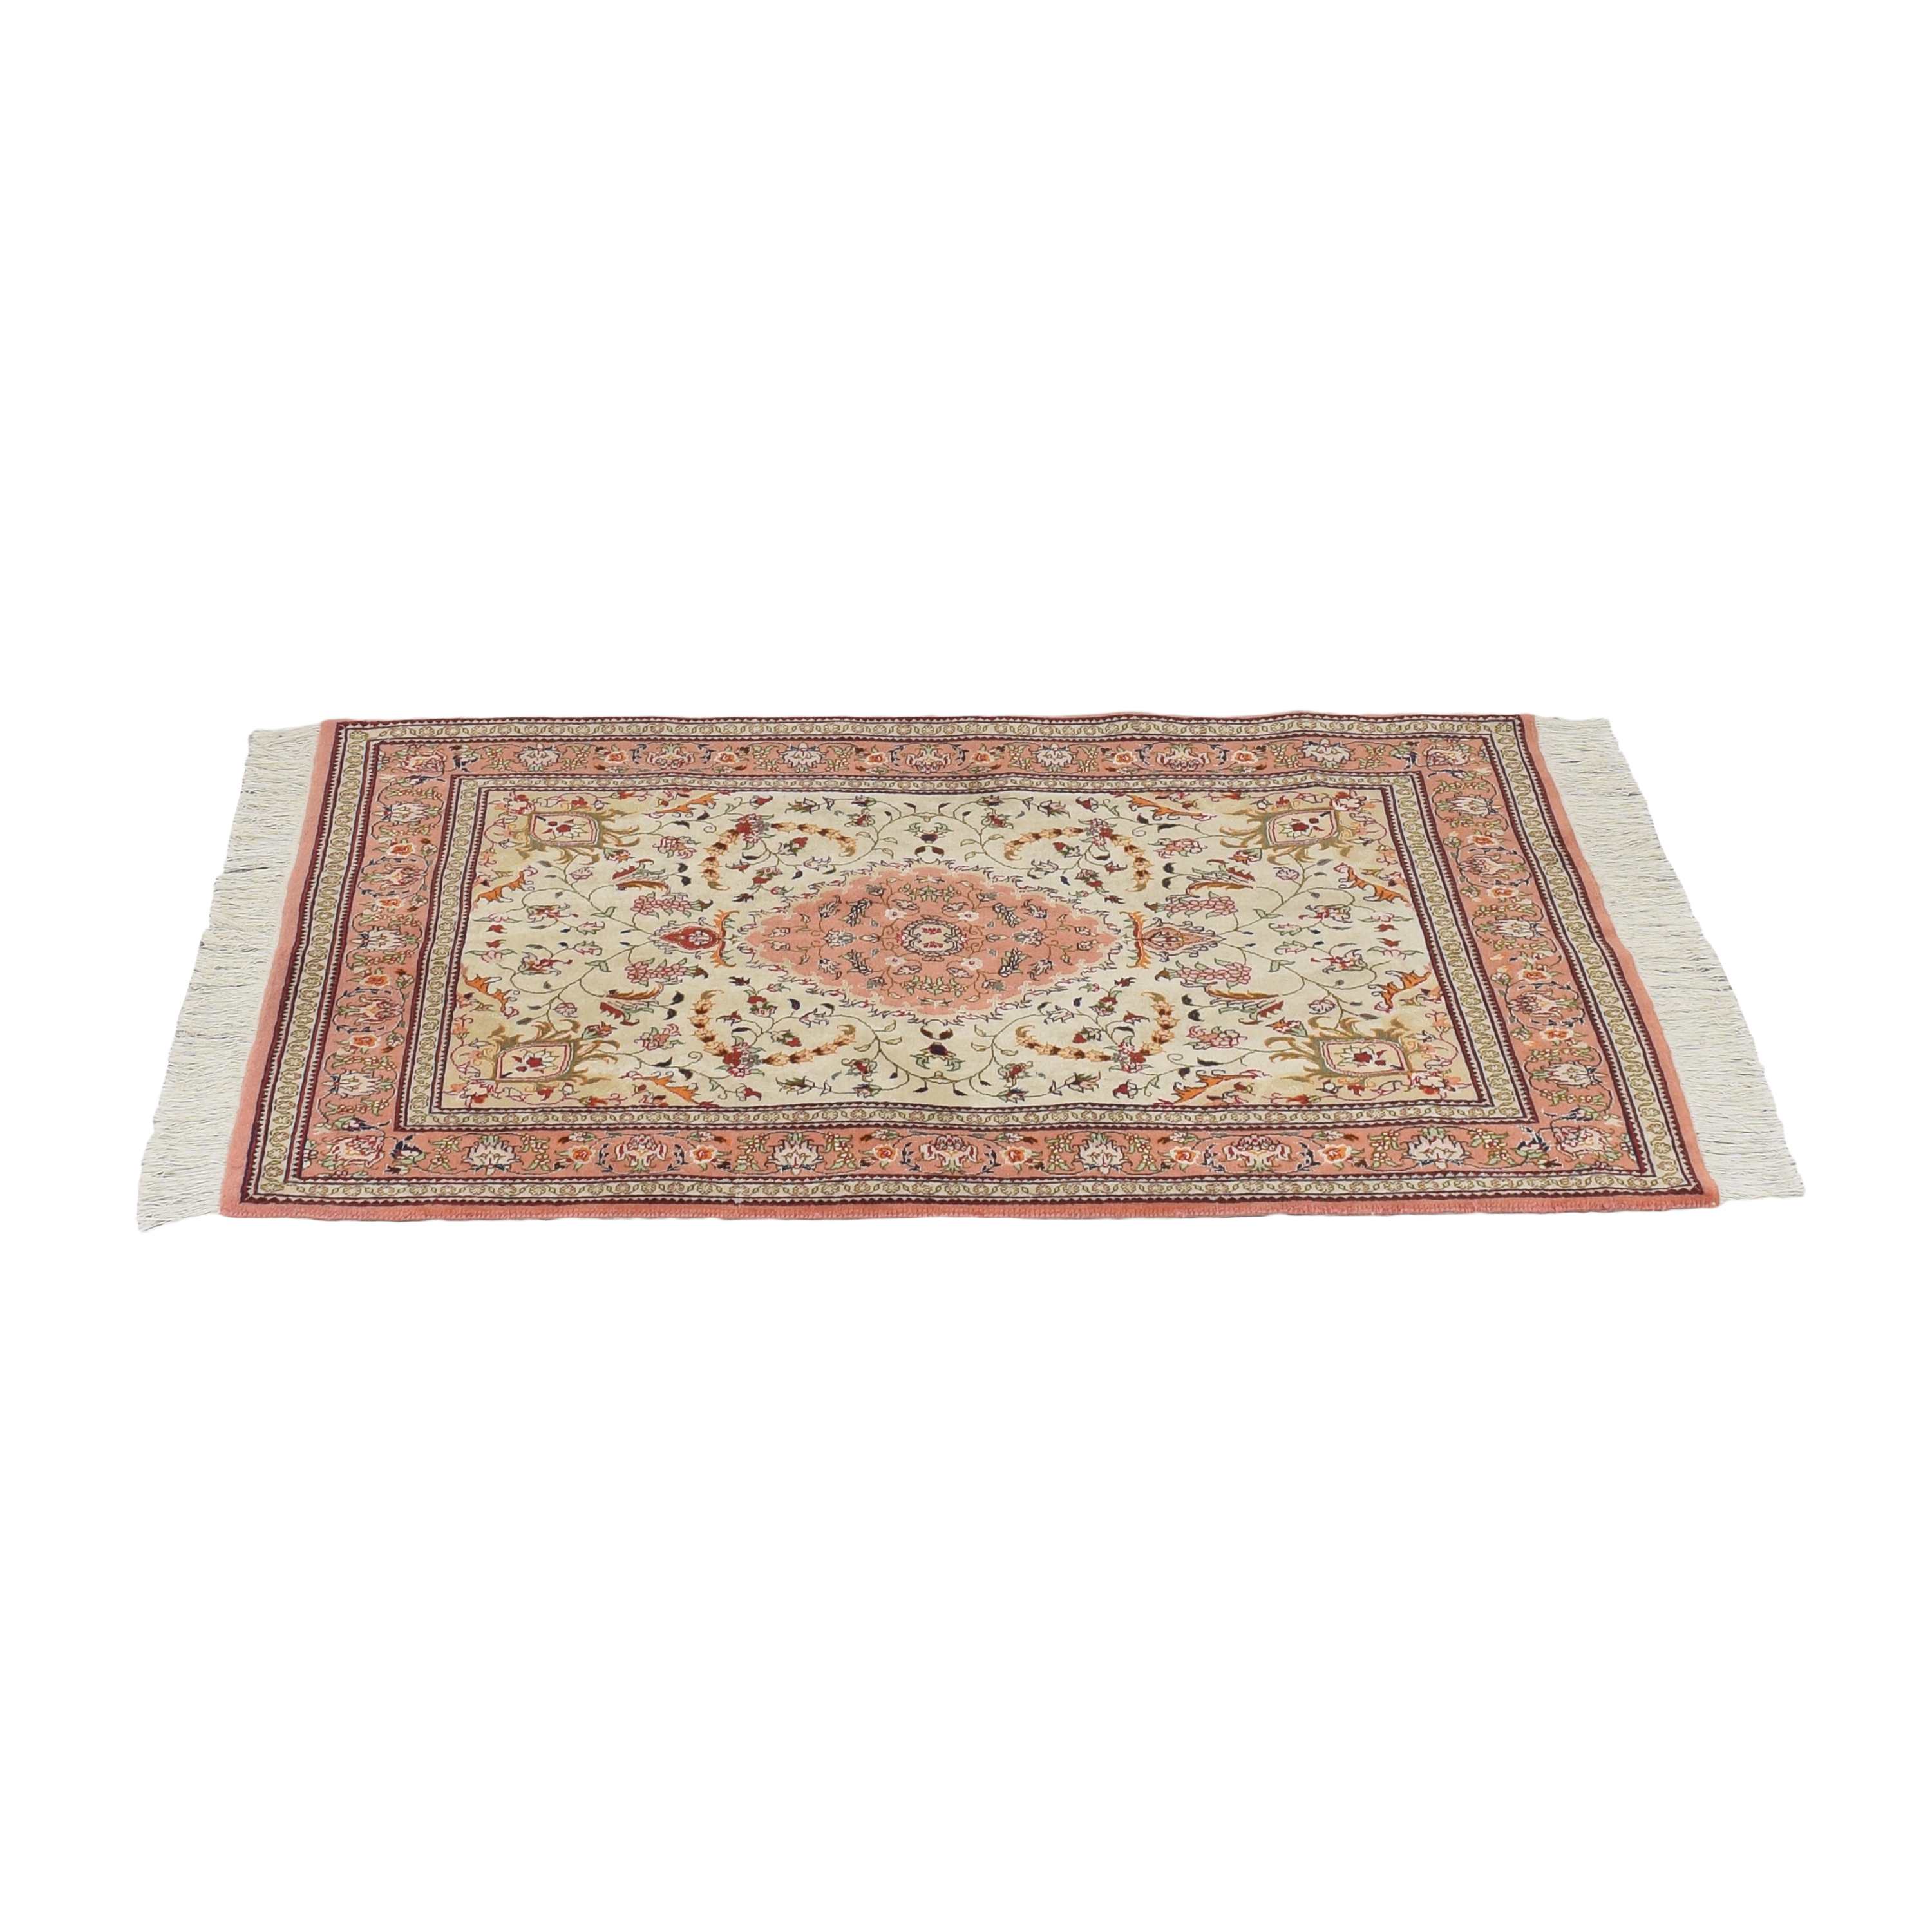 Patterned Area Rug with Tassels pa